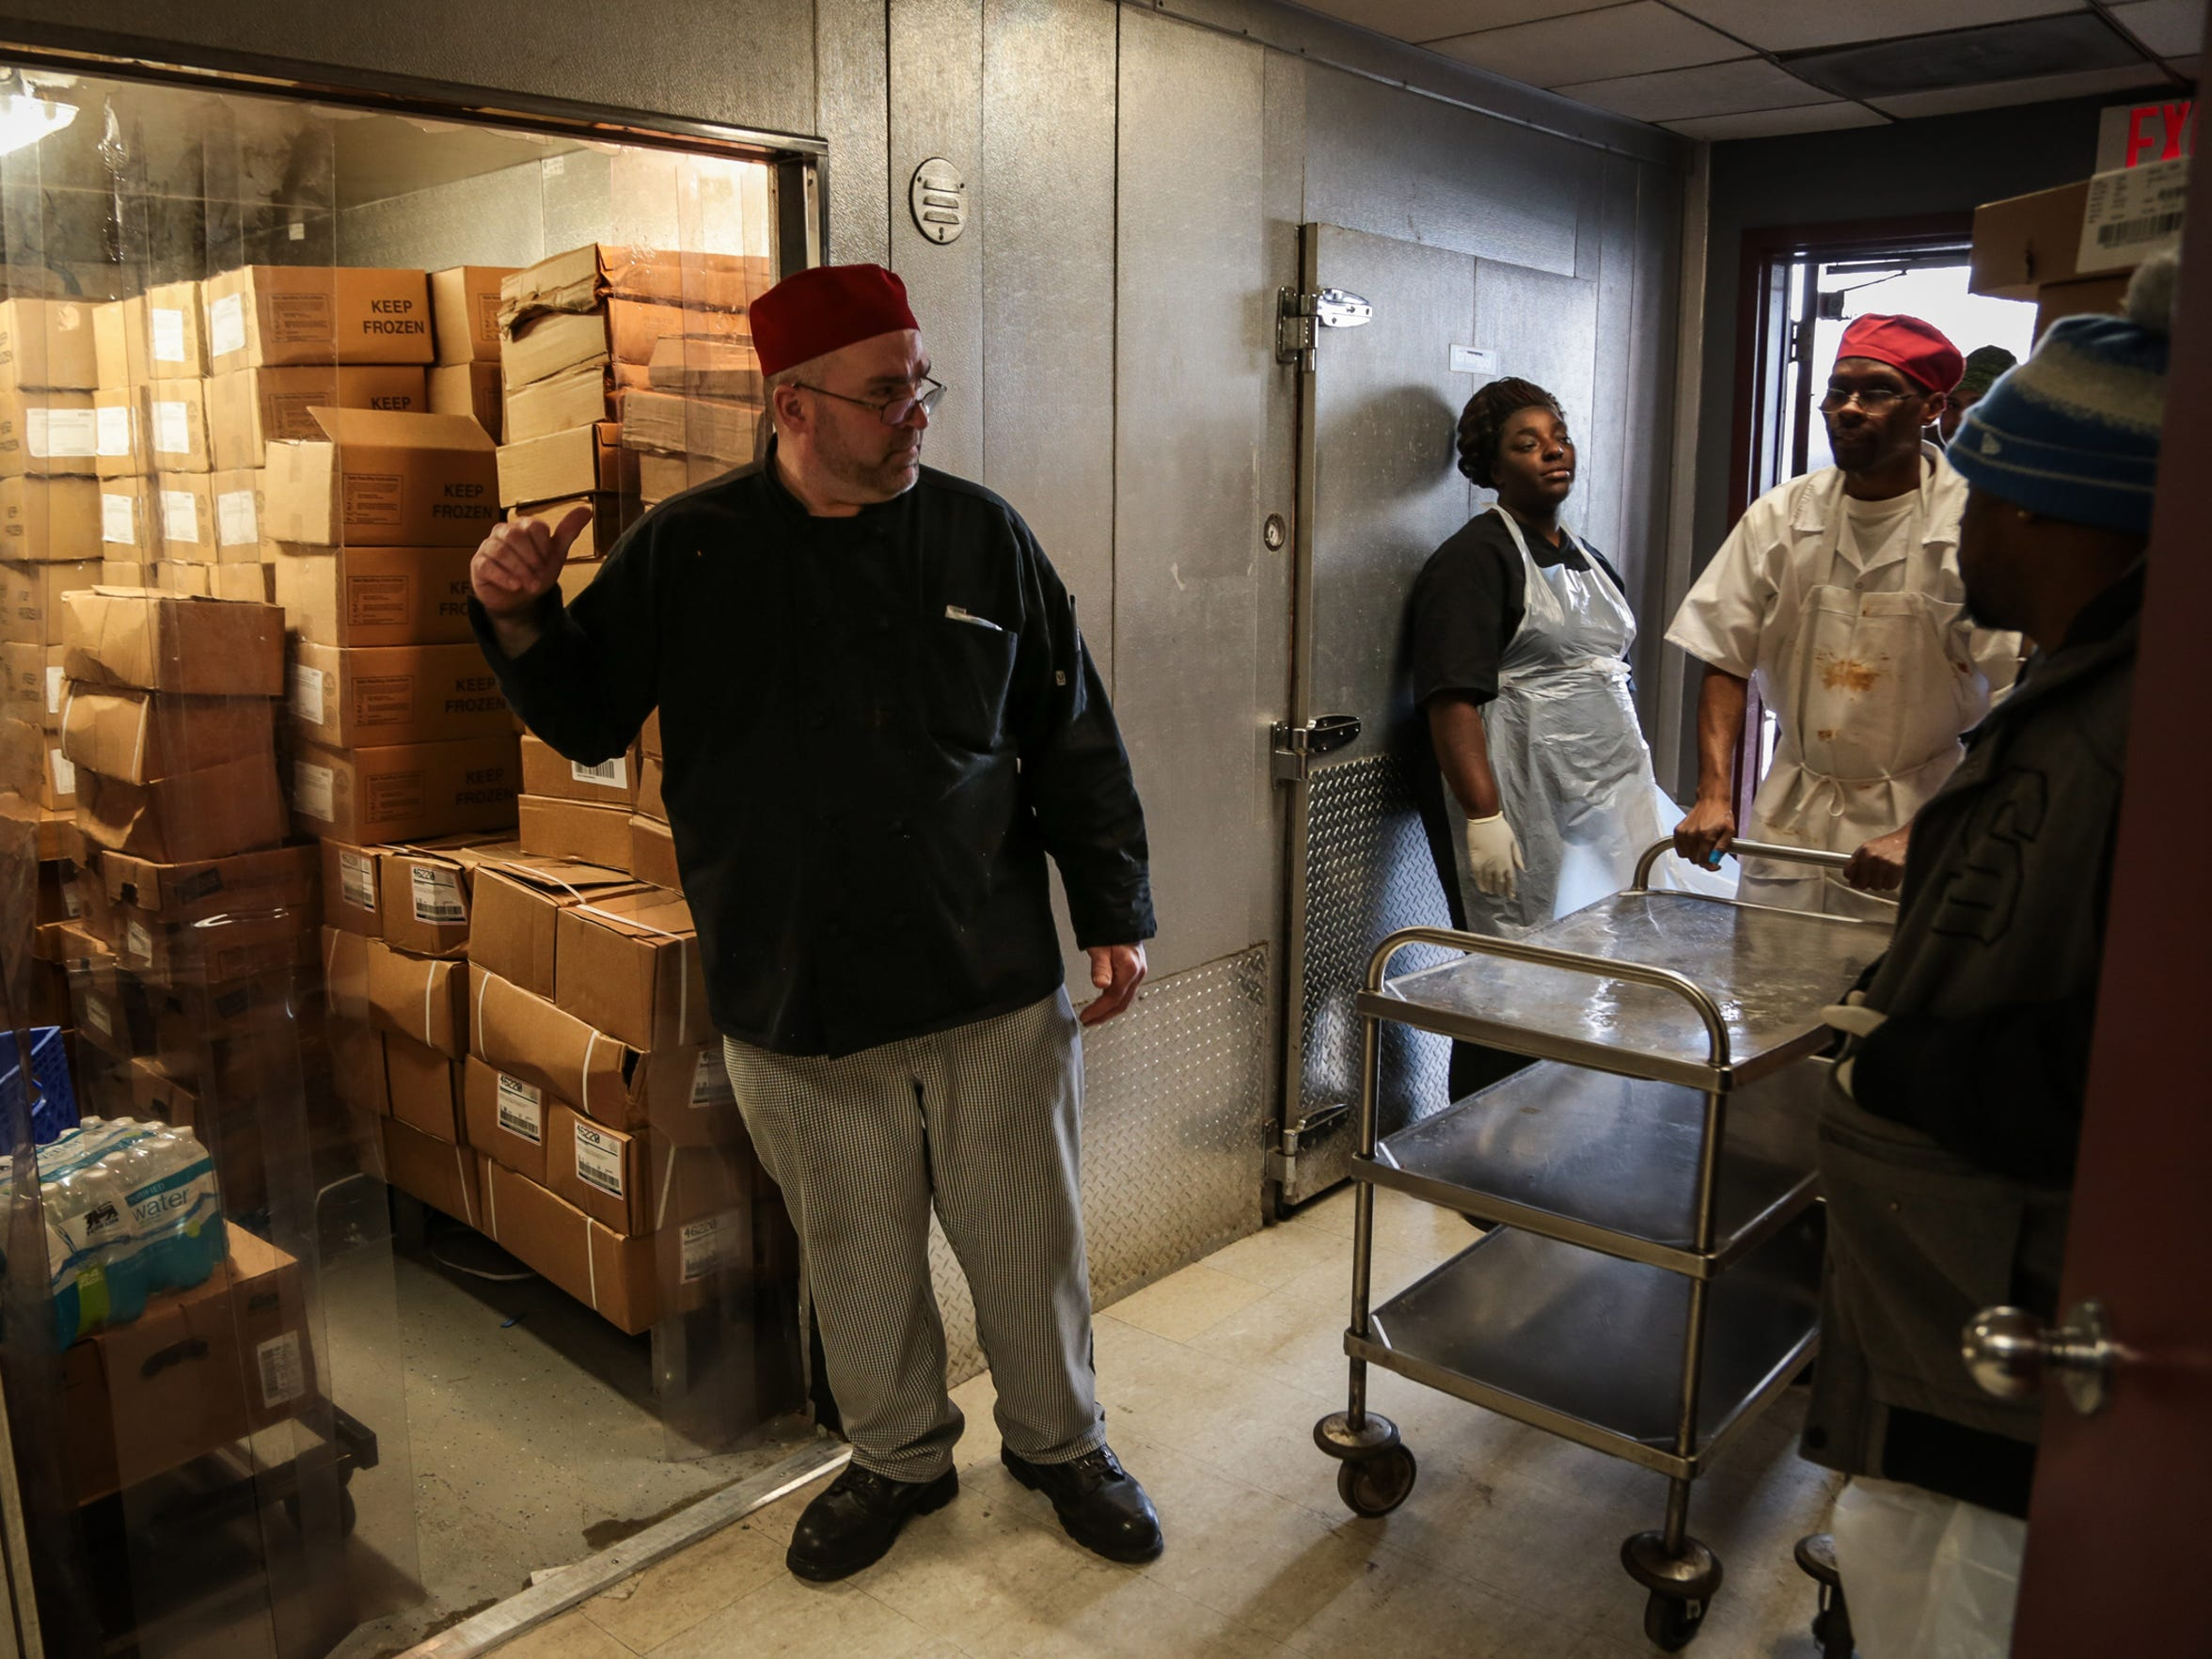 Drew Reeves, 50 of Warren, center, gives instructions to others working in the kitchen at the Salvation Army's Harbor Light Center as he prepares the day's food for the Bed and Bread program's trucks.